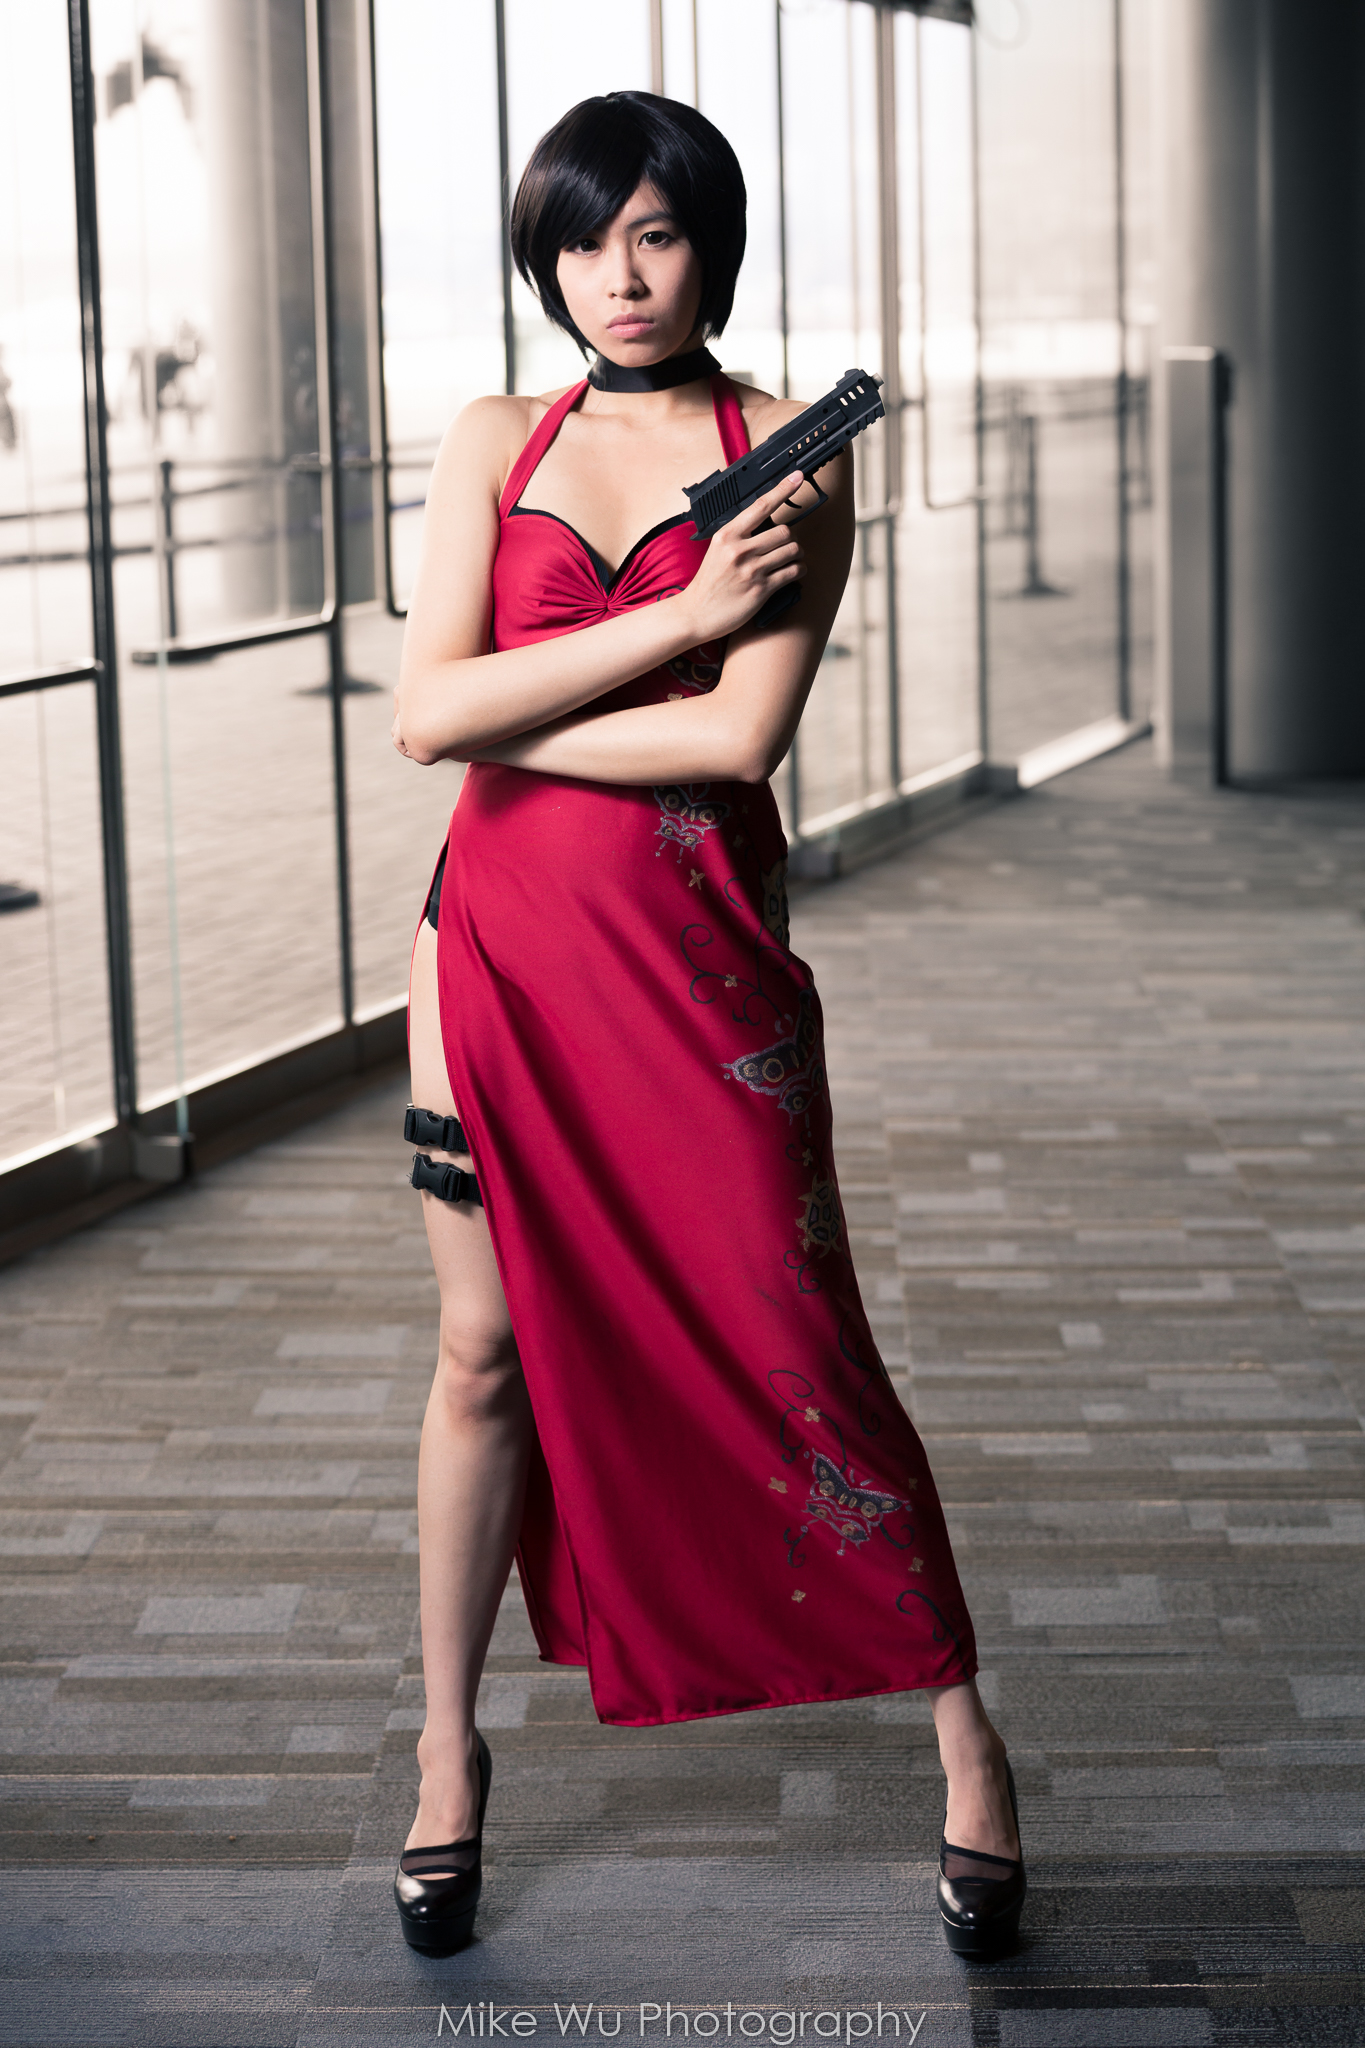 cosplay, ada wong, resident evil, character, movie, gun, red dress, asian